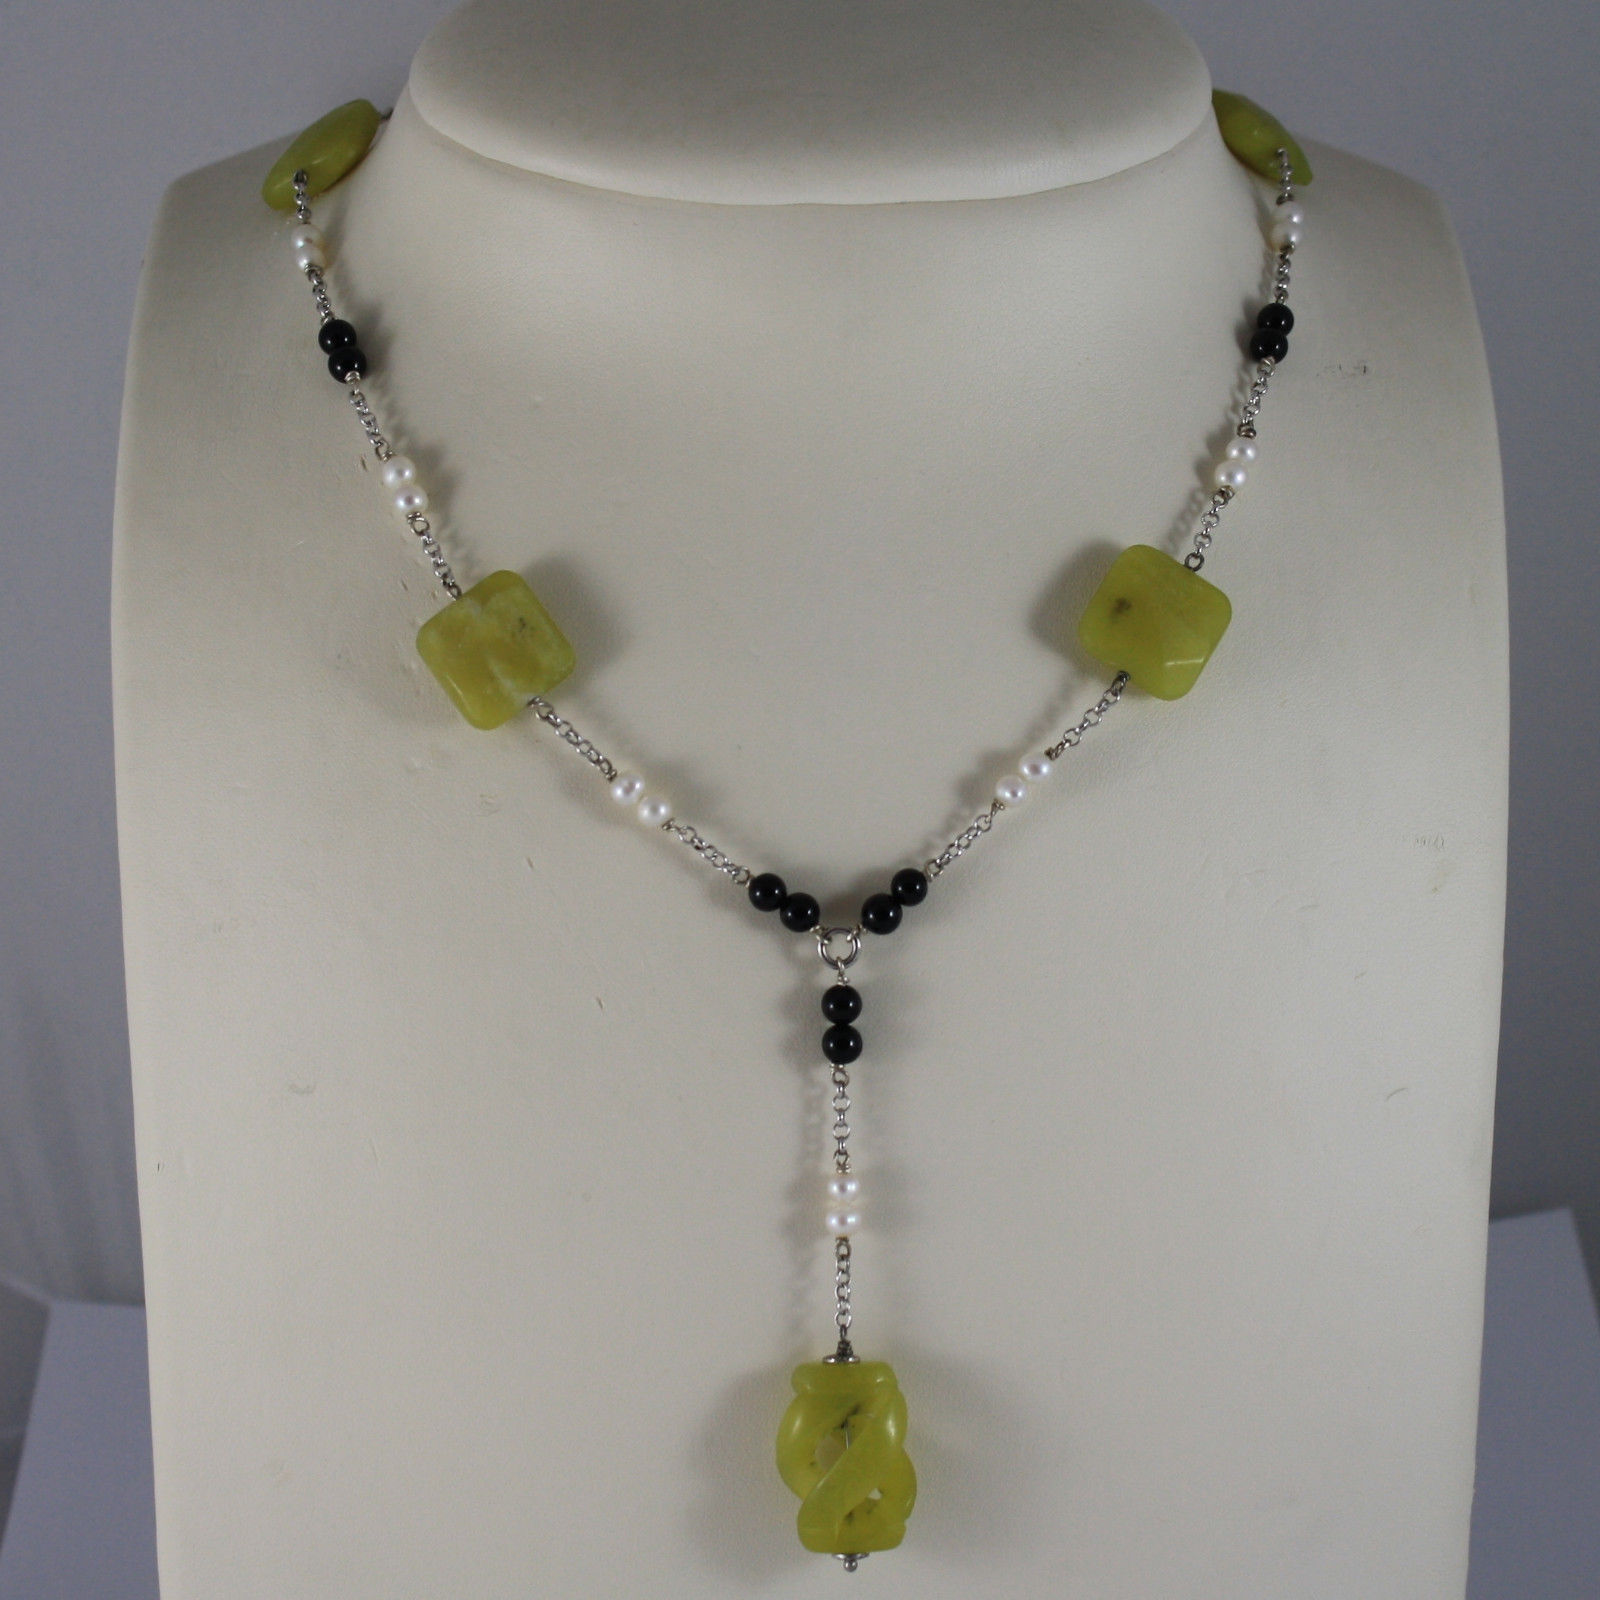 .925 RHODIUM SILVER NECKLACE WITH GREEN JASPER, BLACK ONYX AND WHITE PEARLS